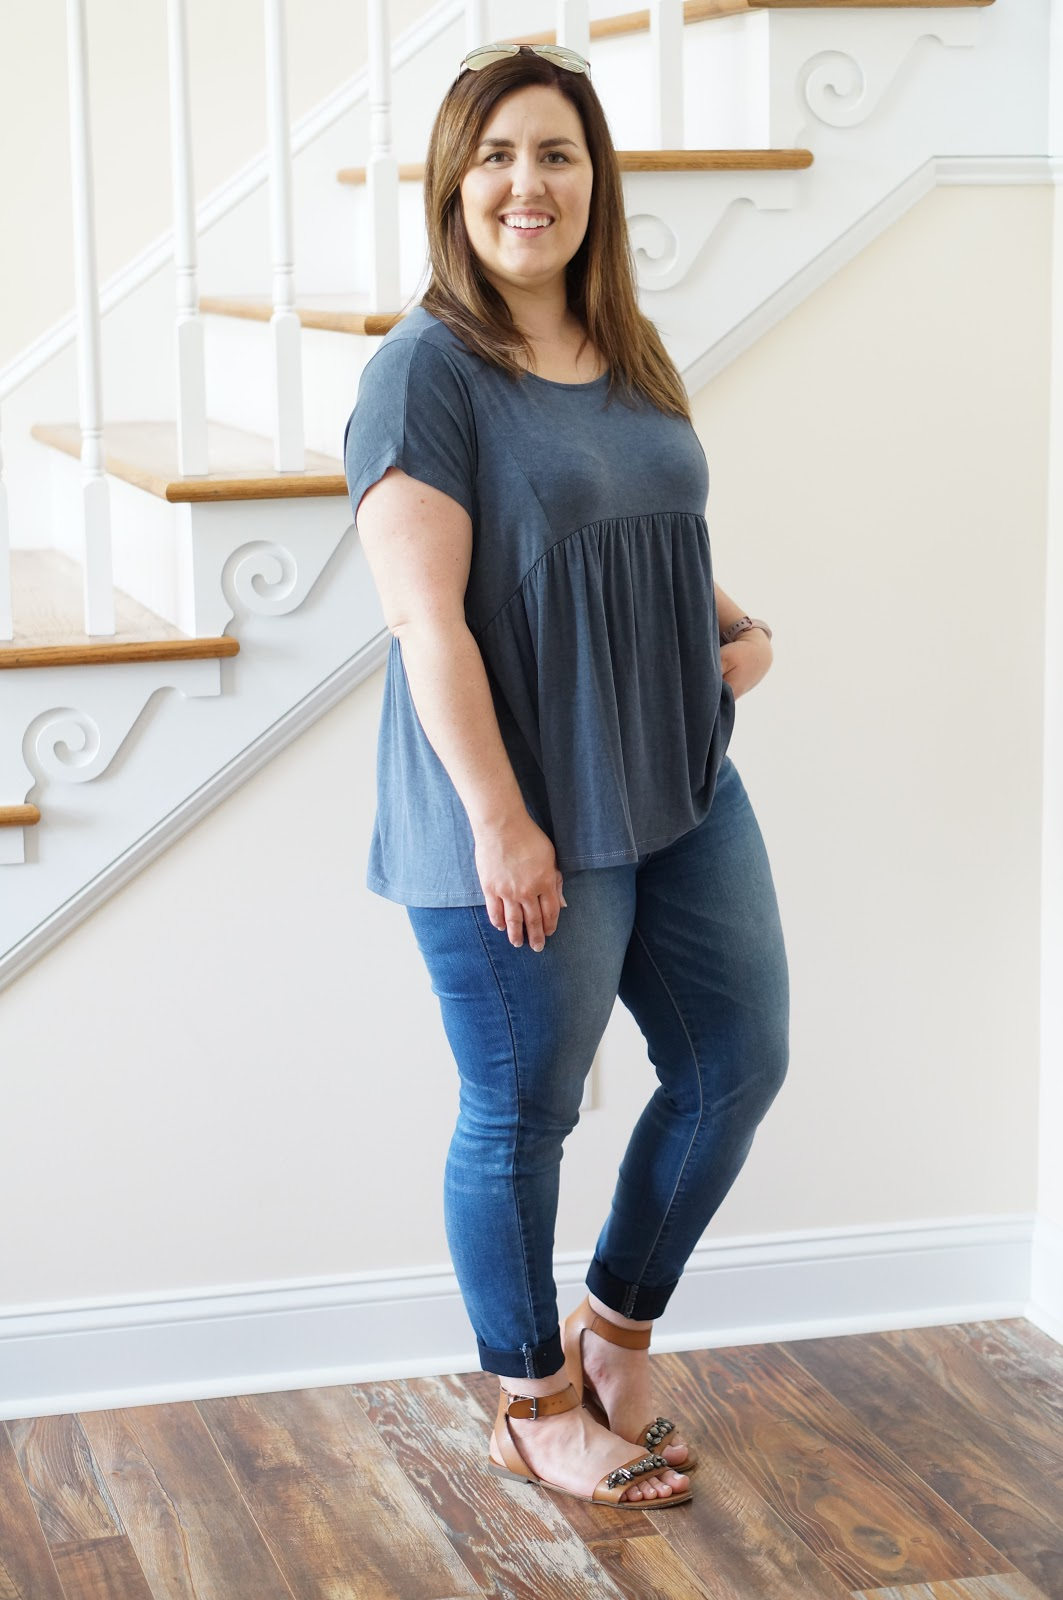 Popular North Carolina style blogger Rebecca Lately shares one of her favorite color combos.  Click here to read how she wears chambray and cognac!